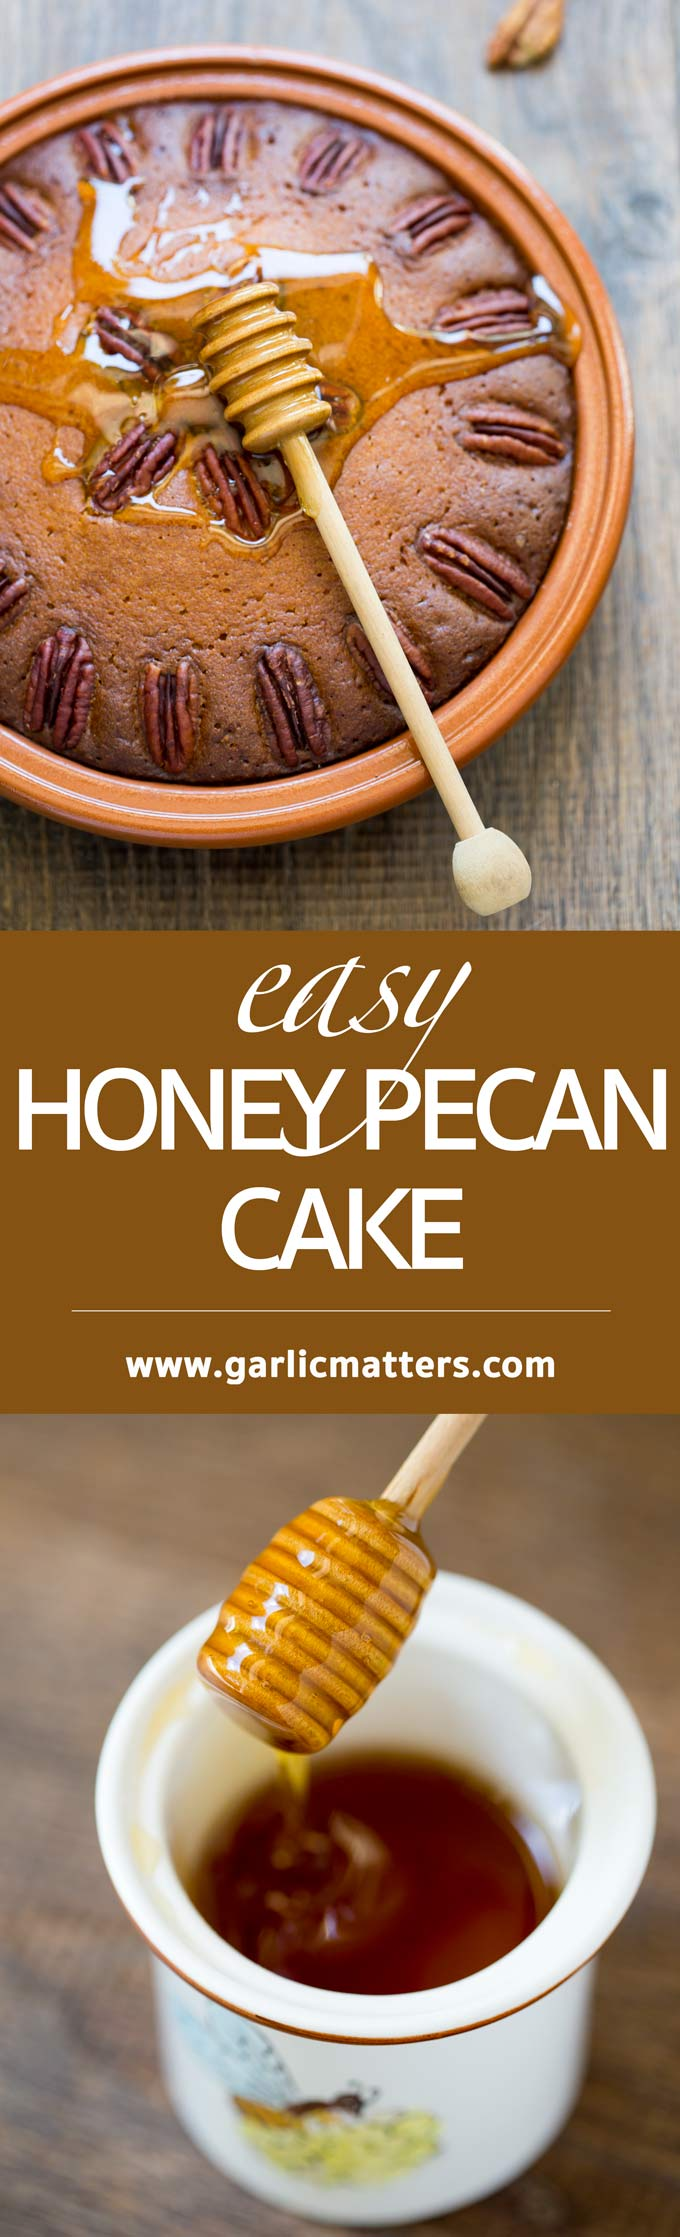 Honey Pecan Cake recipe is an easy way to make your cup of tea that extra special. Simple, moist and delicious cake for all sweets lovers.